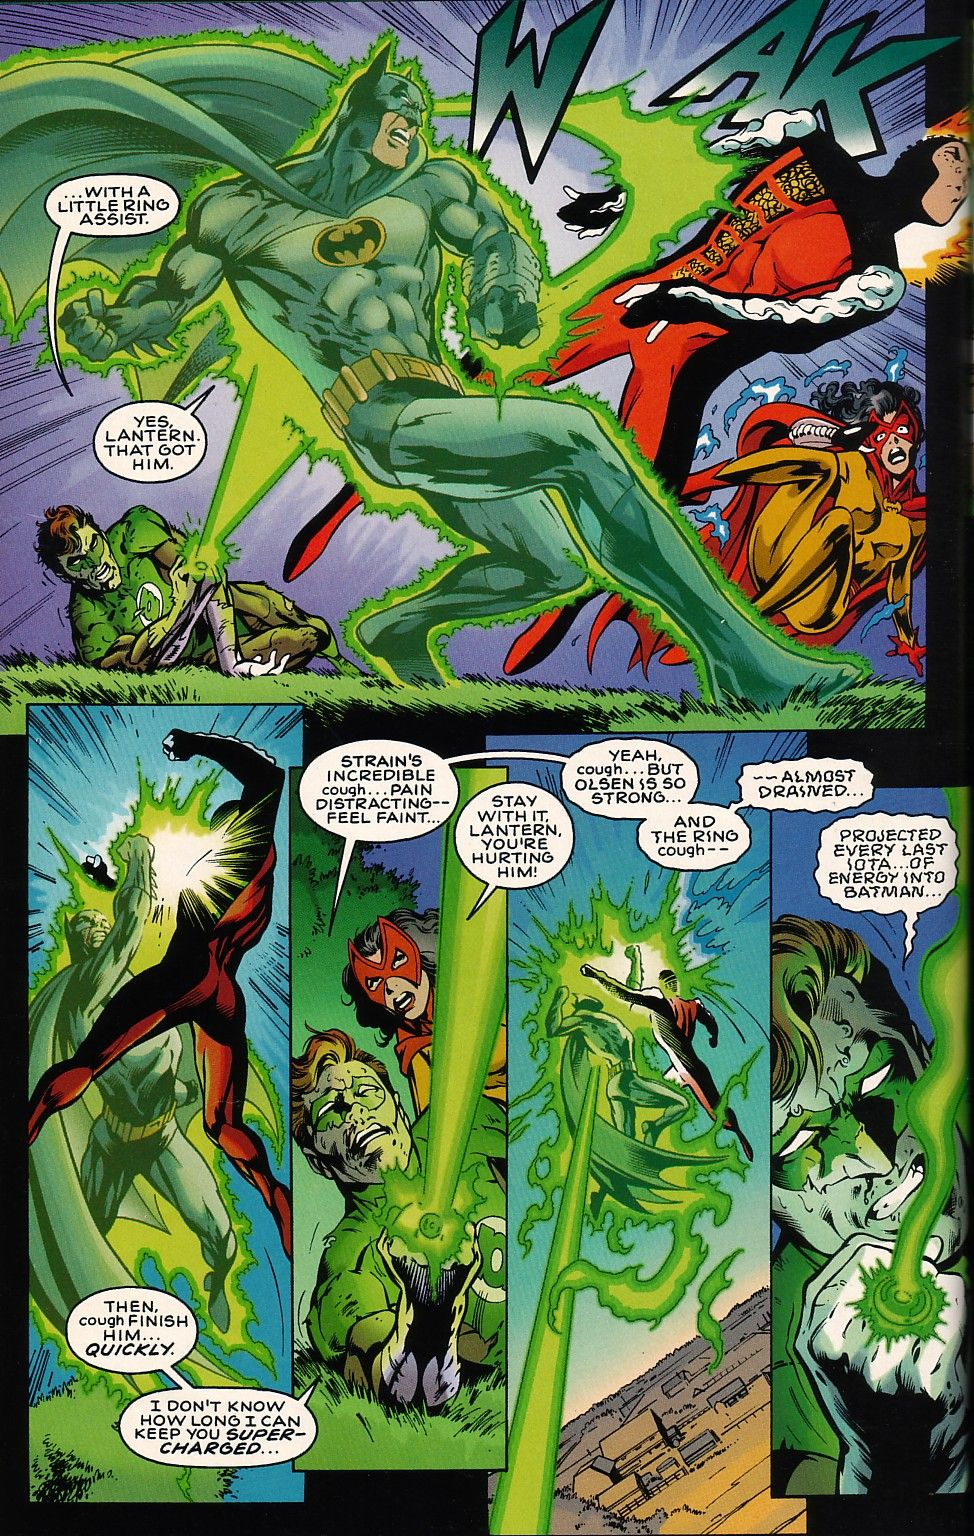 JLA: The Nail Issue #3 - Read JLA: The Nail Issue #3 comic online in ...